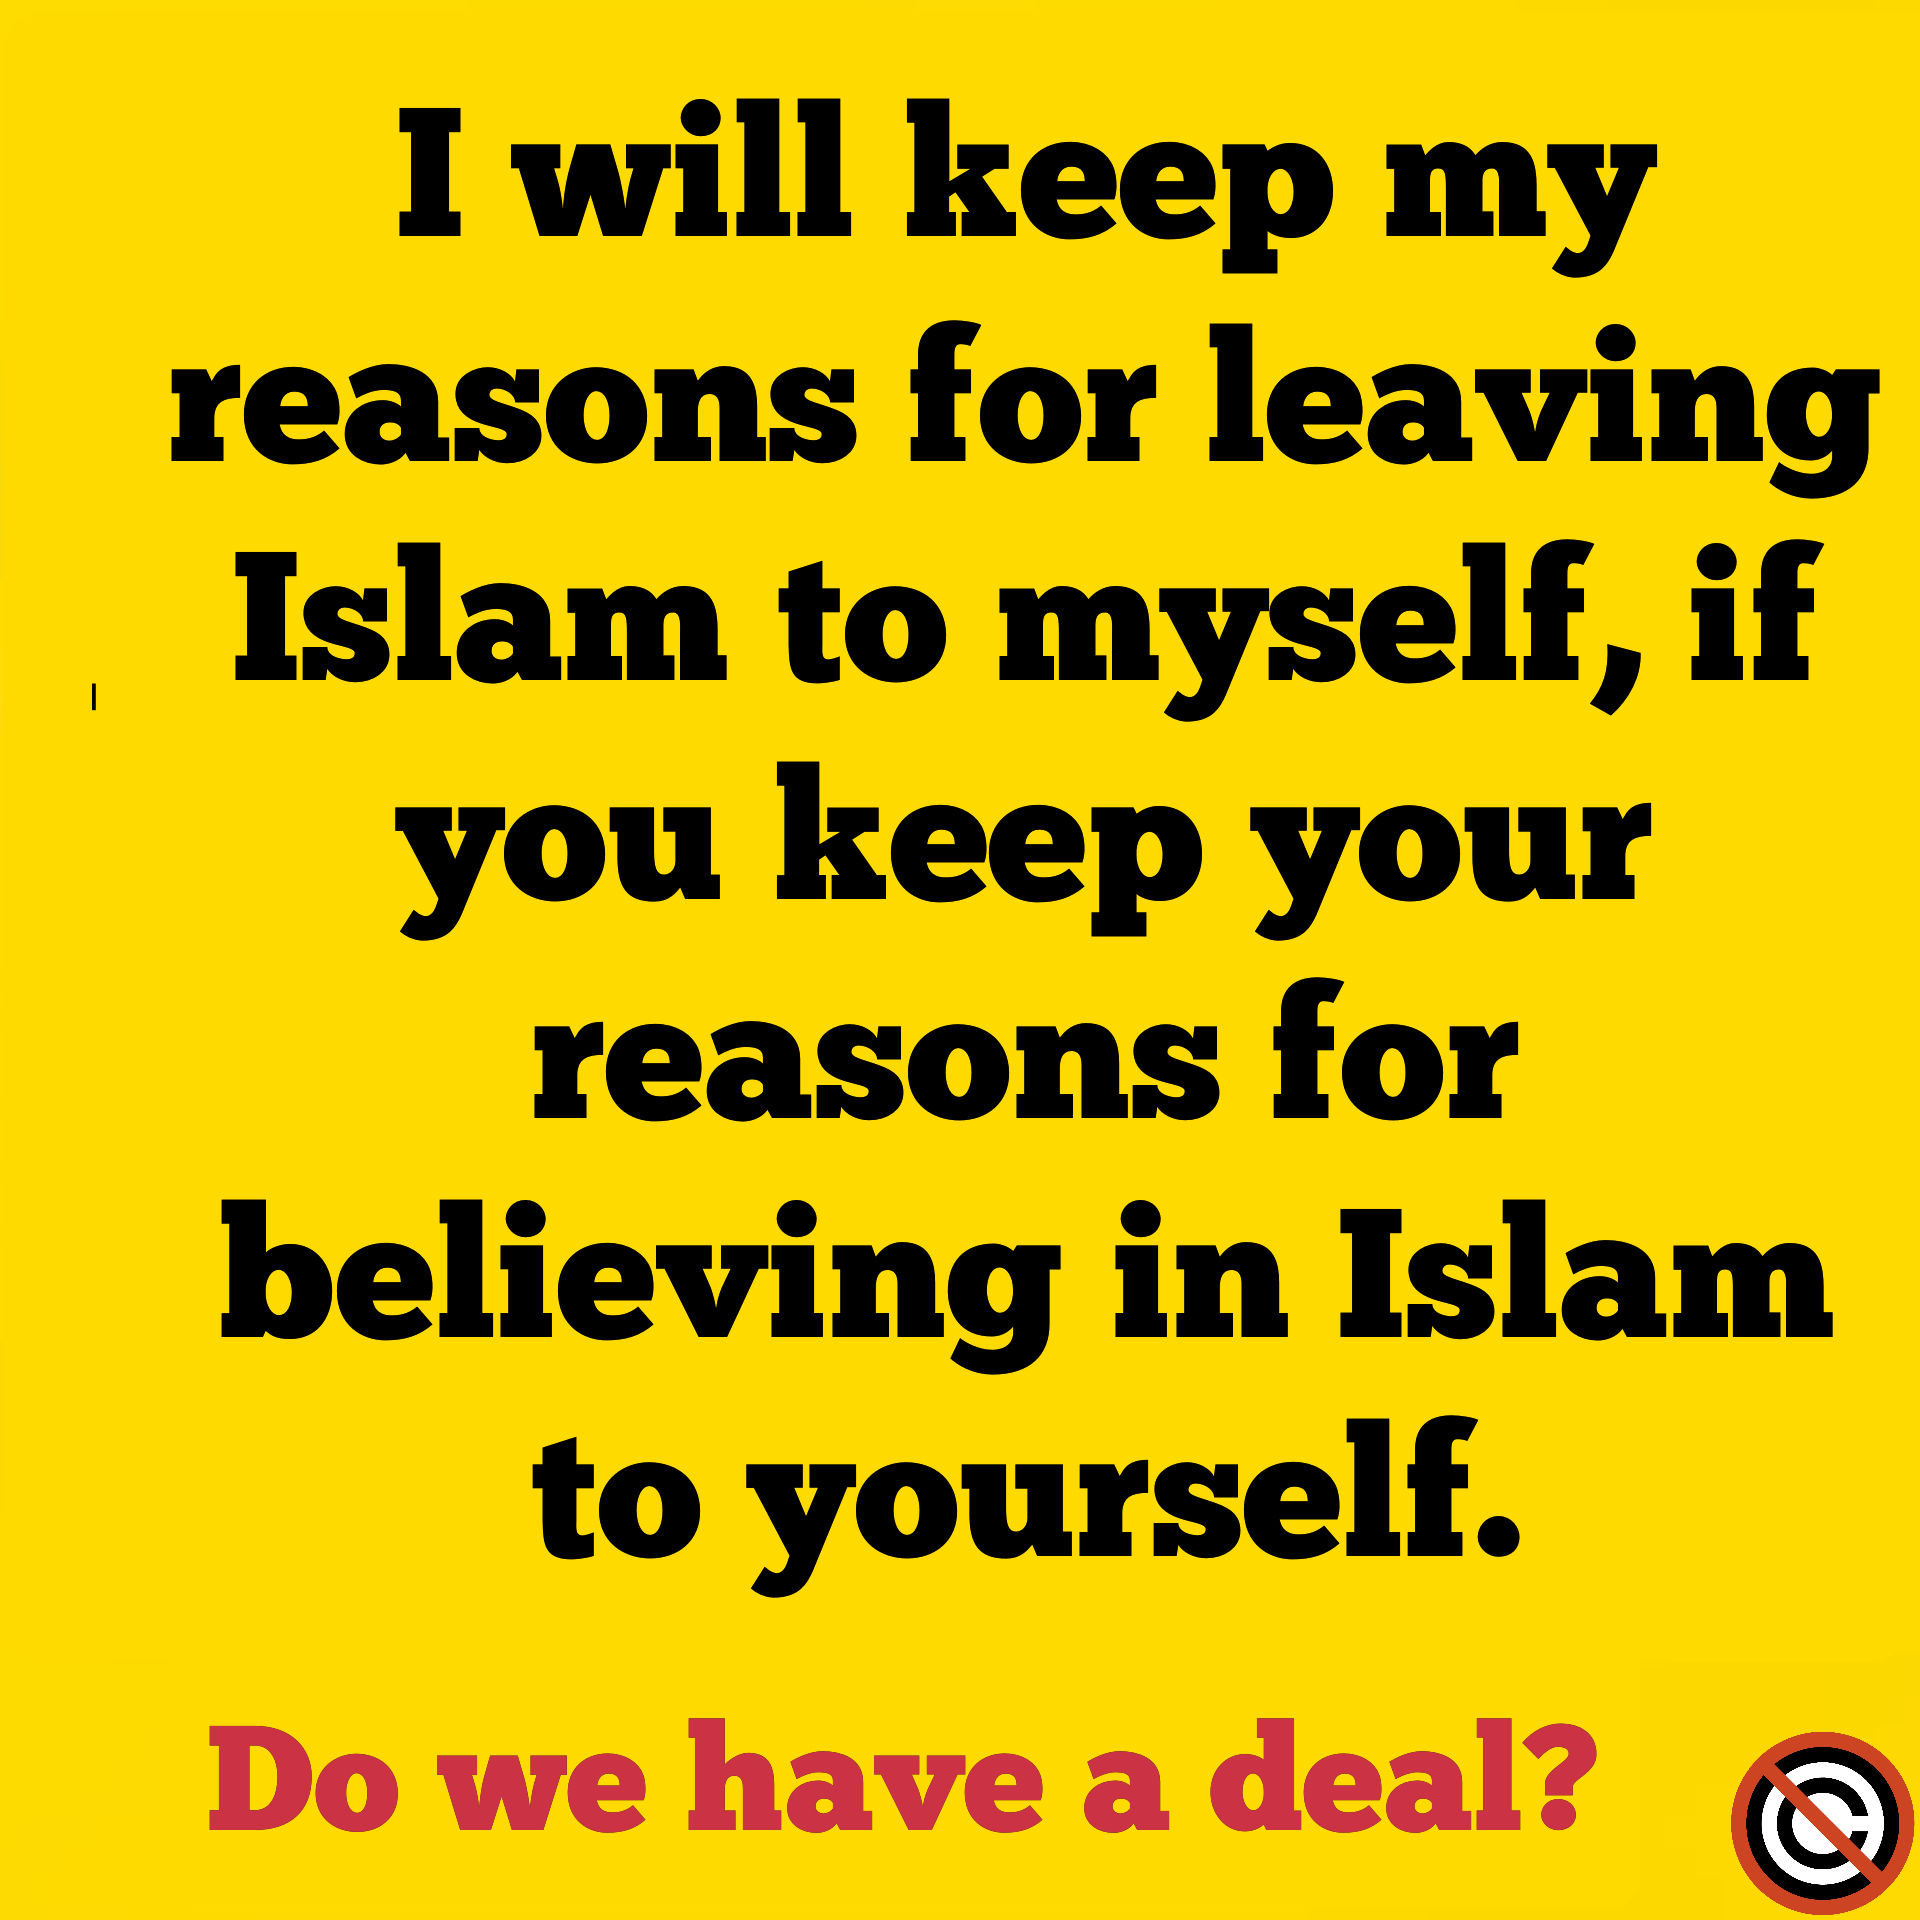 I will keep my reasons for leaving Islam for myself if you keep your reasons to believing in Islam to yourself meme